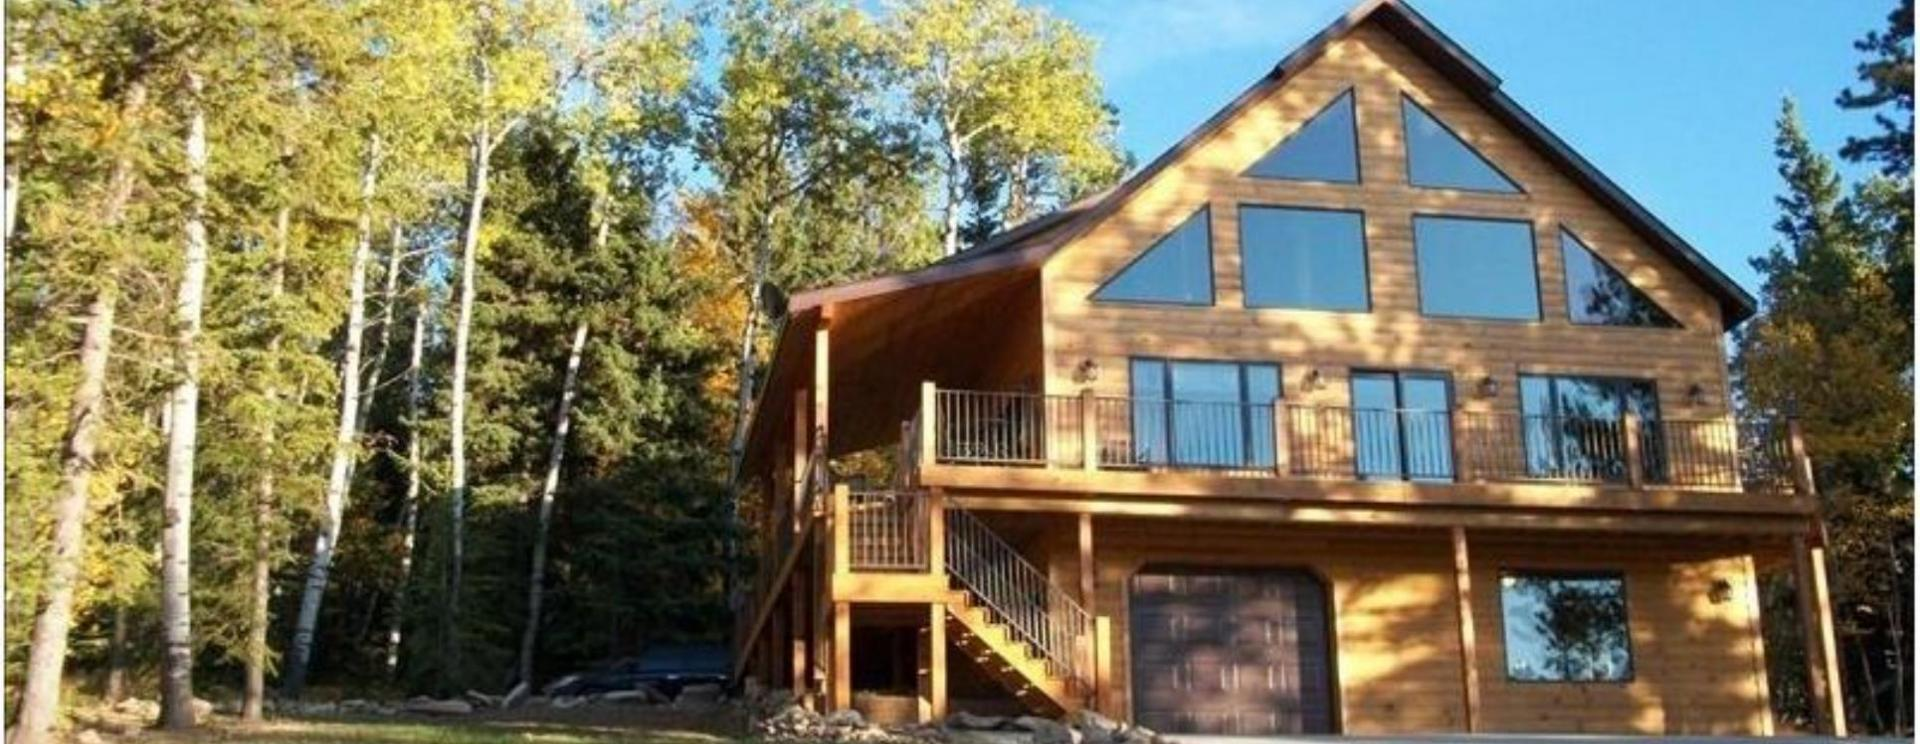 Deadwood Connections - Vacation Homes